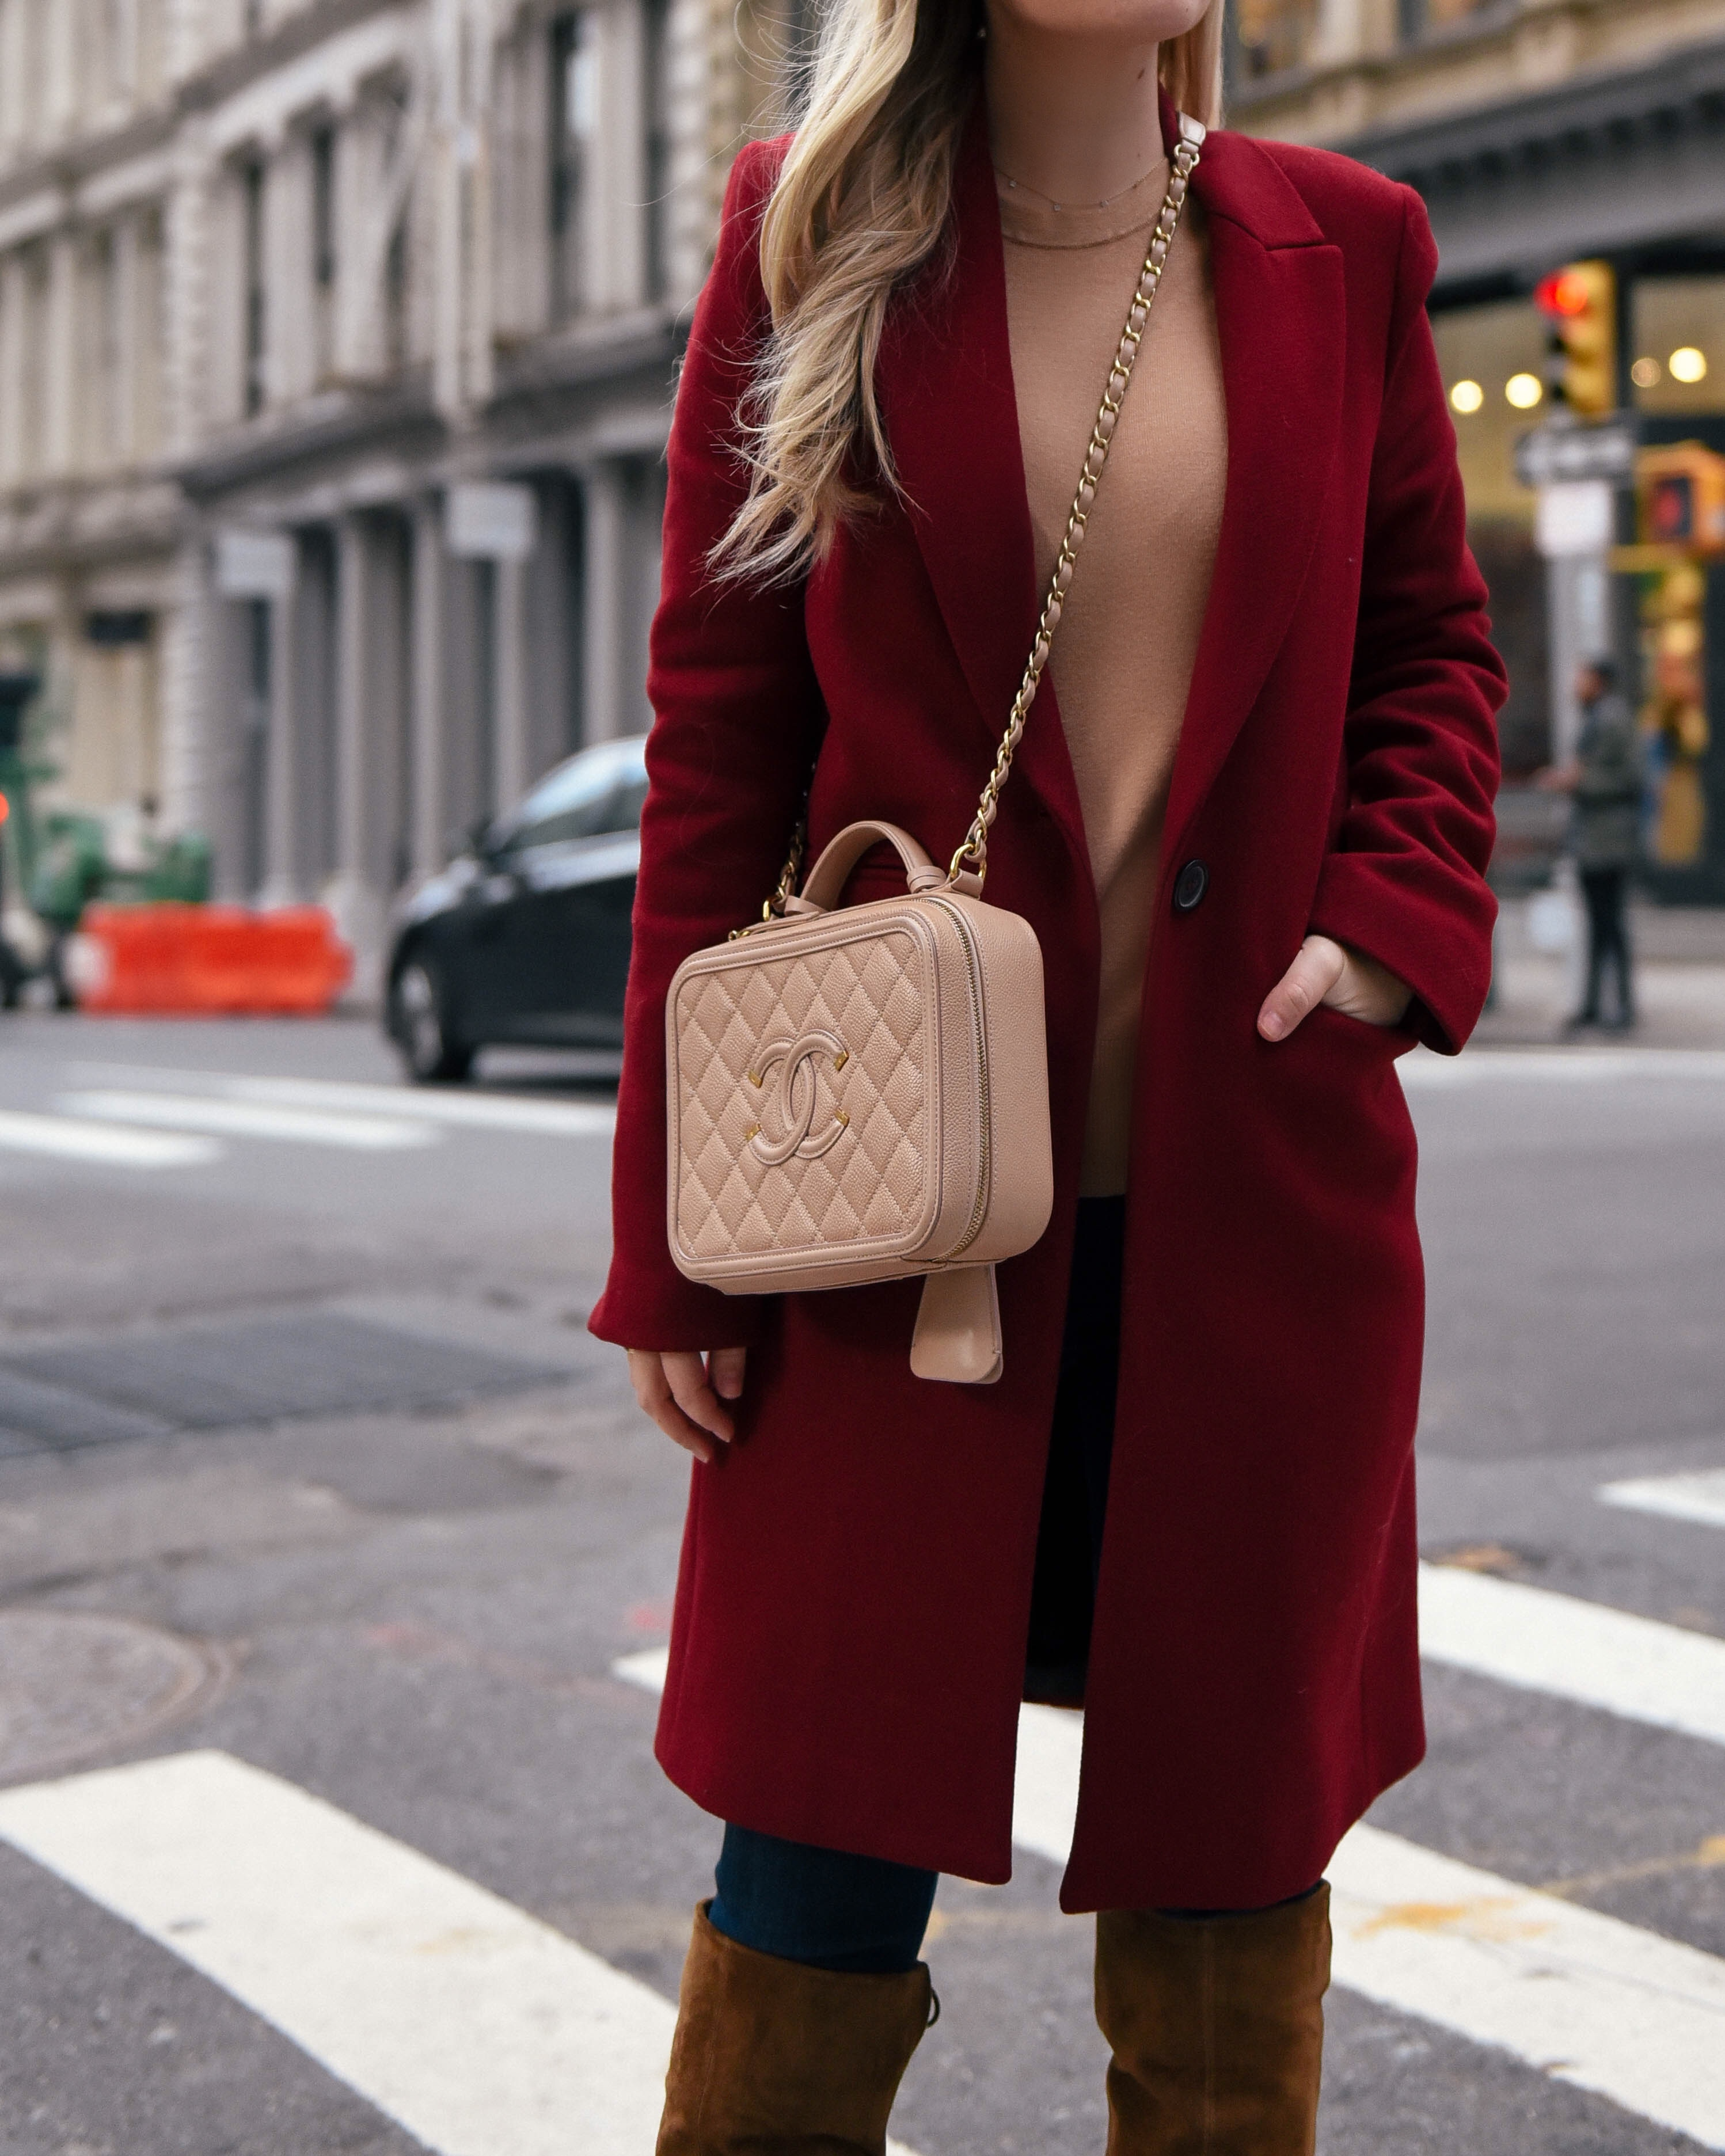 eBay-Coats-Red-Coat-New-York-Chanel-Handbag-Winter-Outfit-Lo-Murphy-Camel-sweater